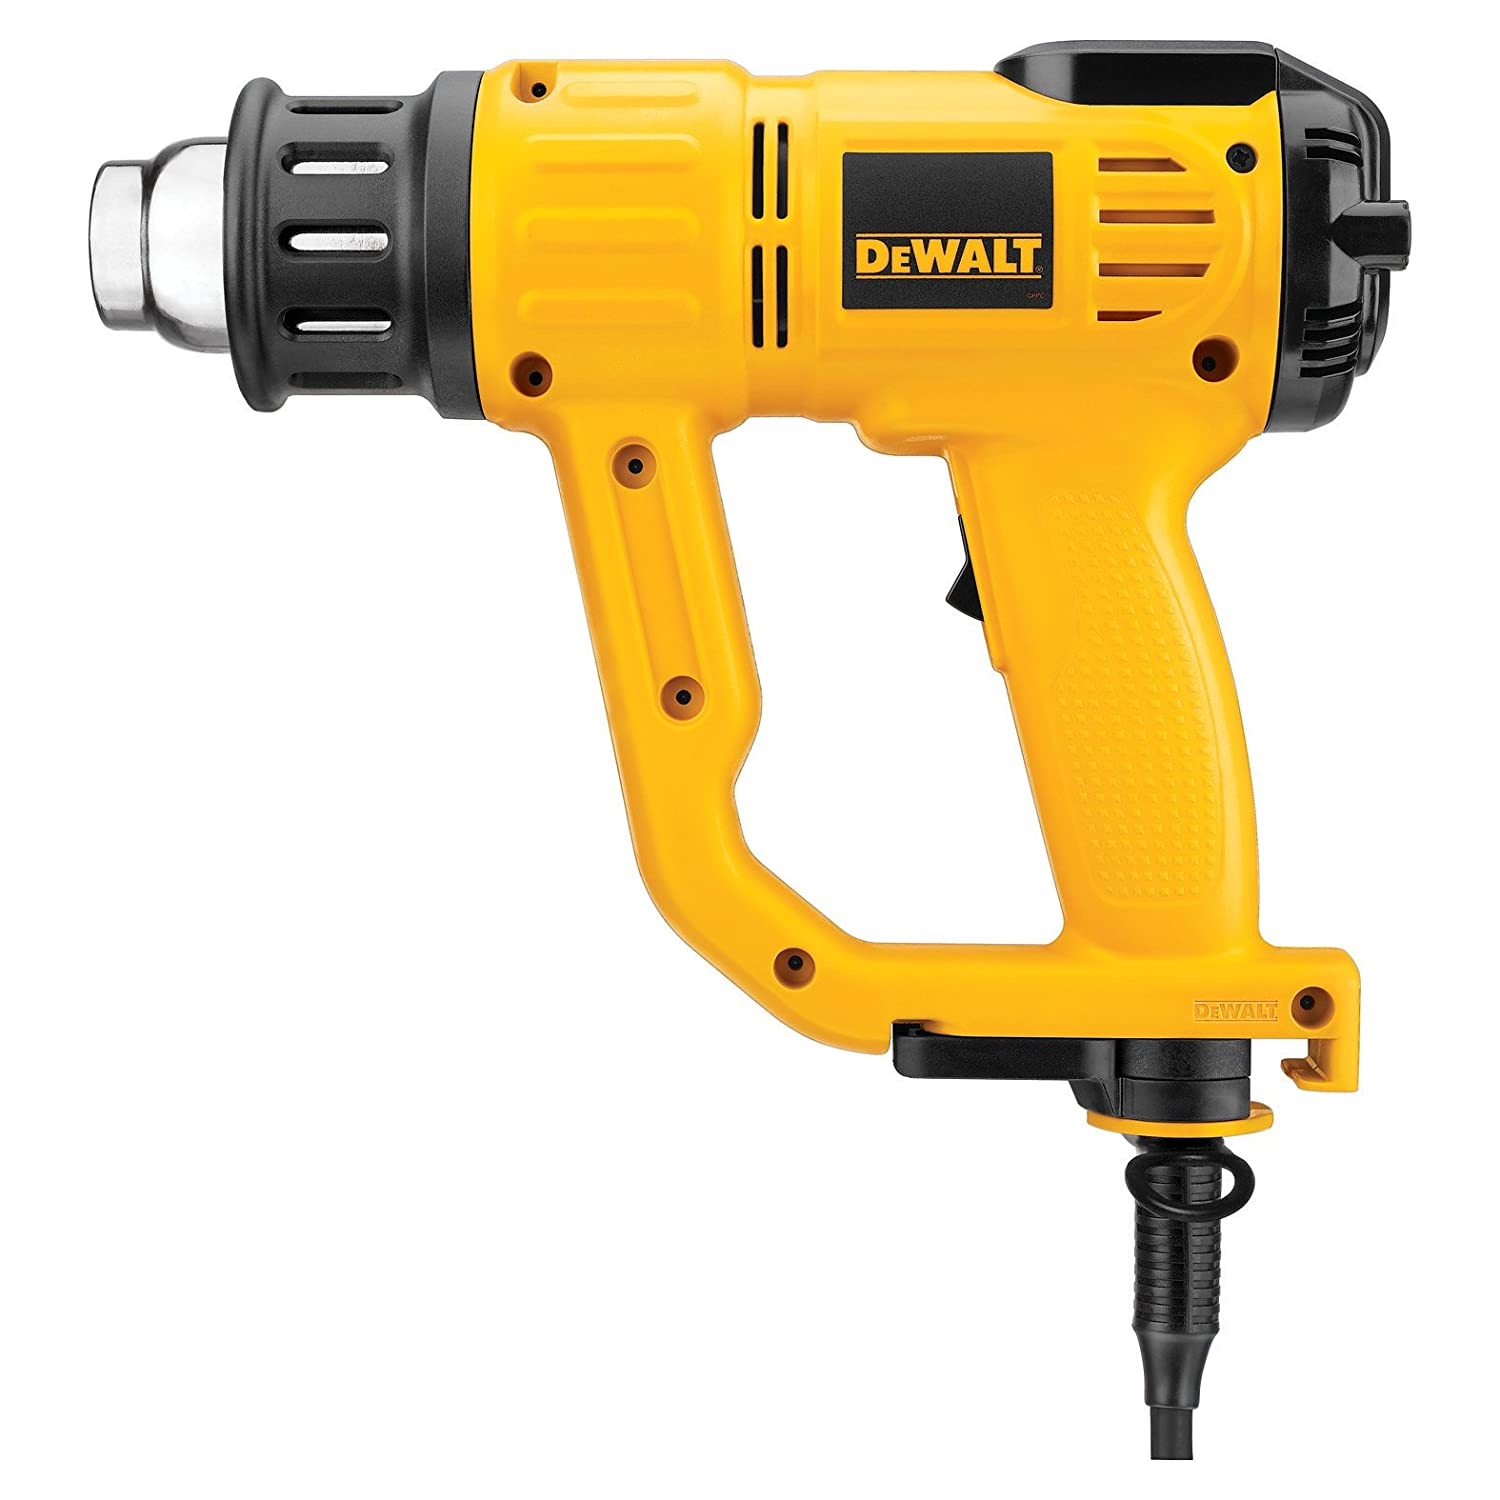 DEWALT D26960 LCD Heat Gun - Power Heat Guns - Amazon.com